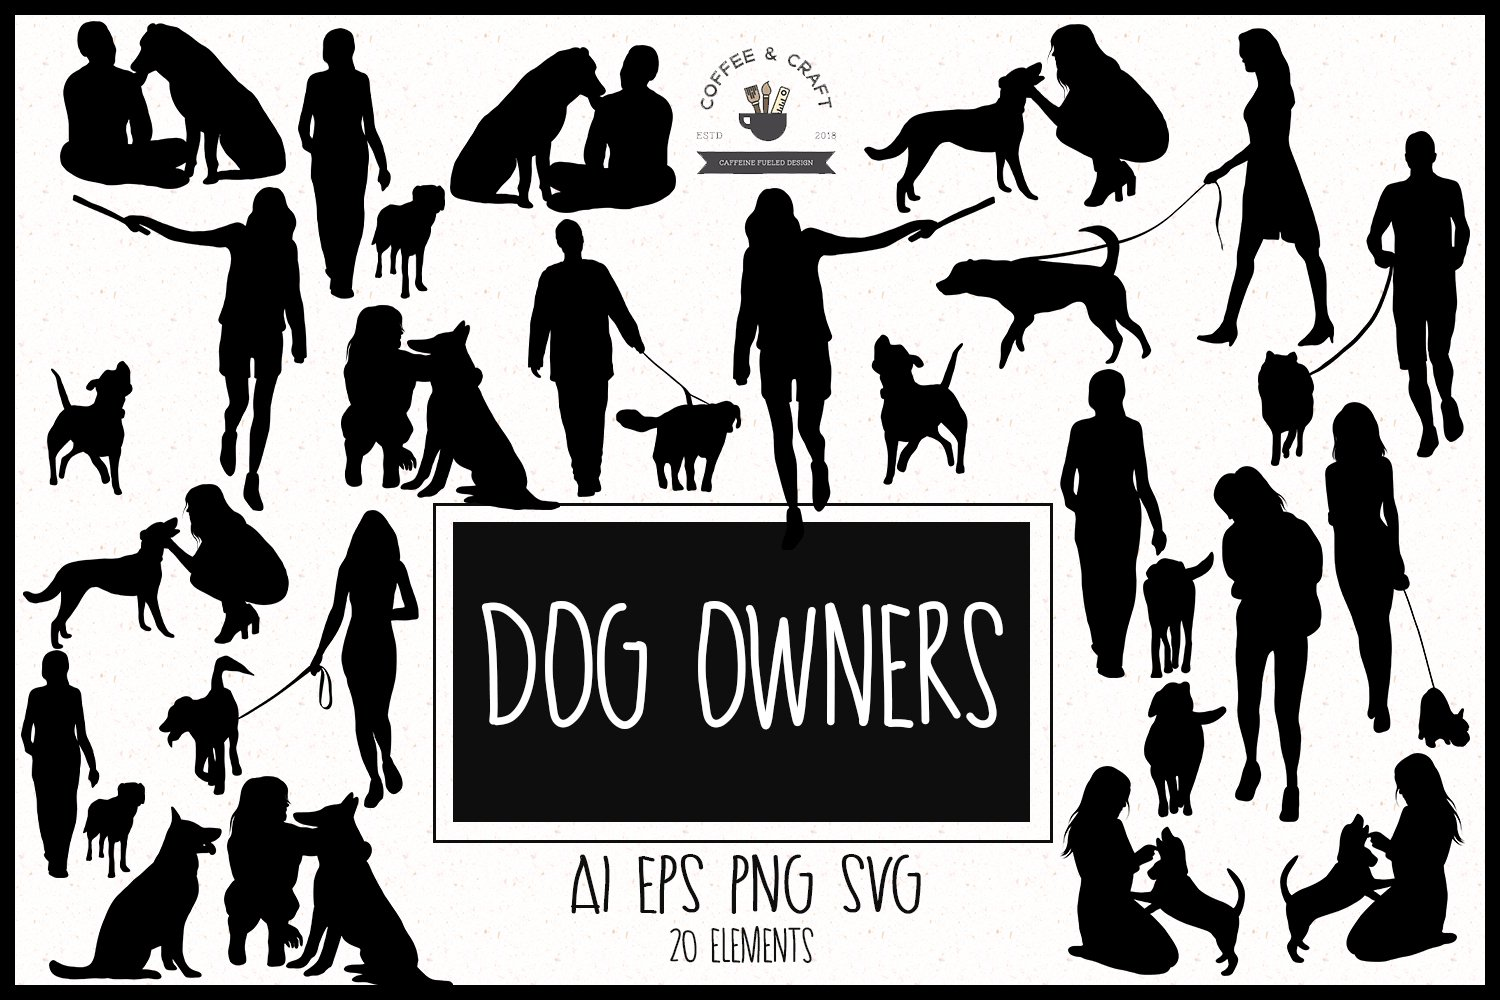 Dog owners clipart example image 1